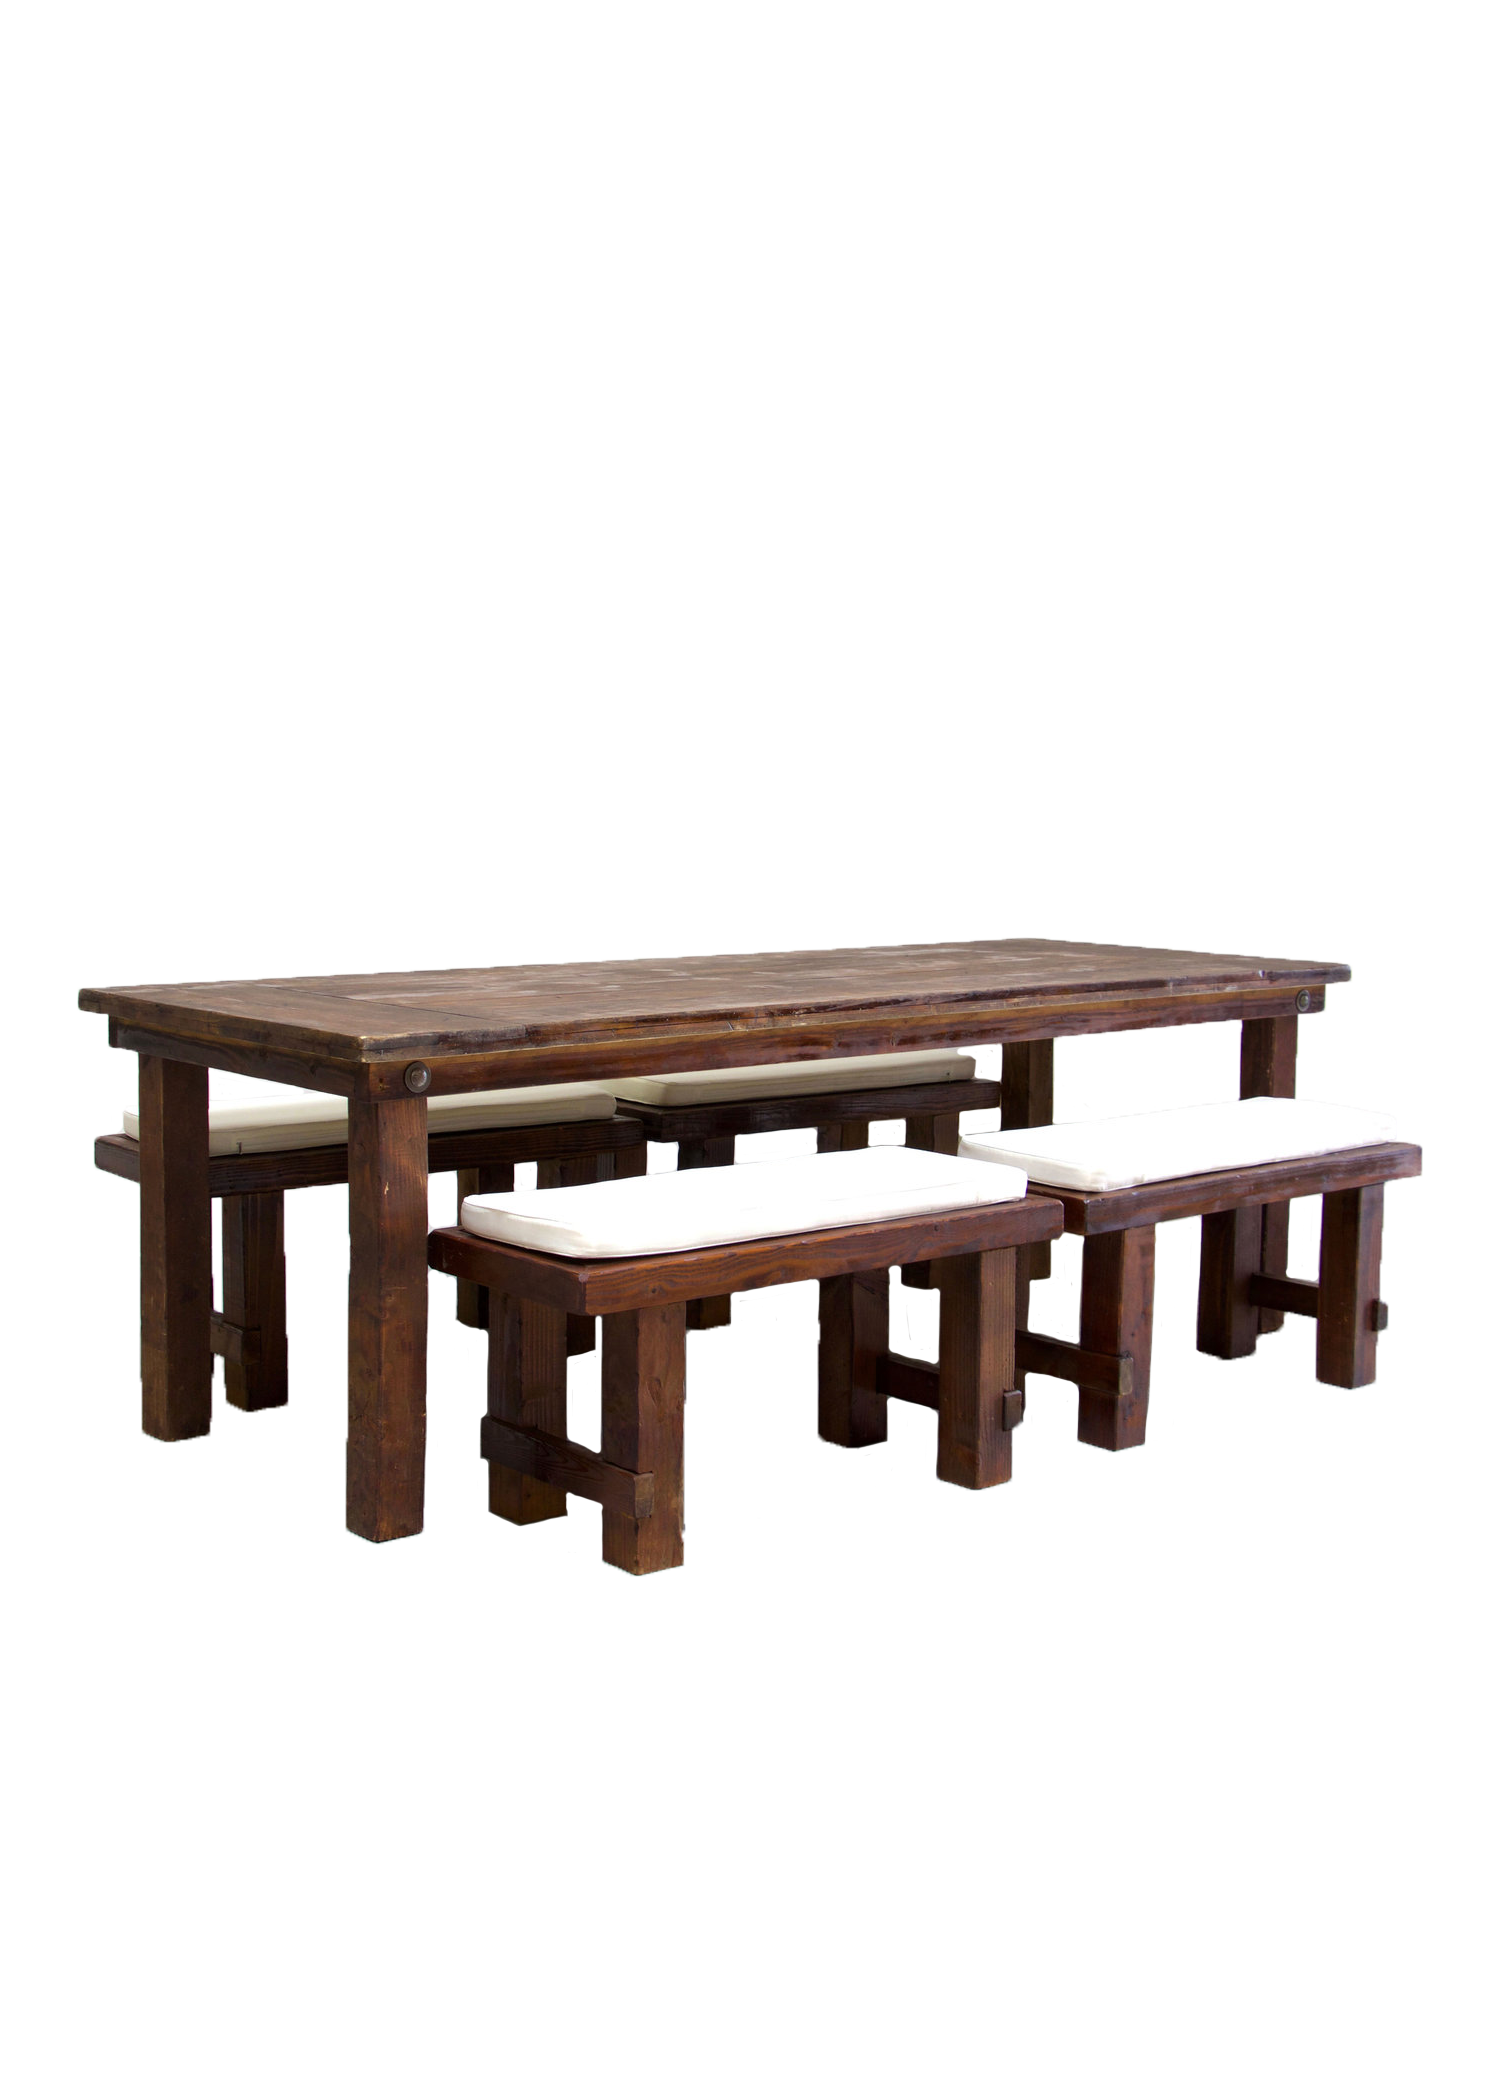 Mahogany Farm Table with 4 Short Benches $145